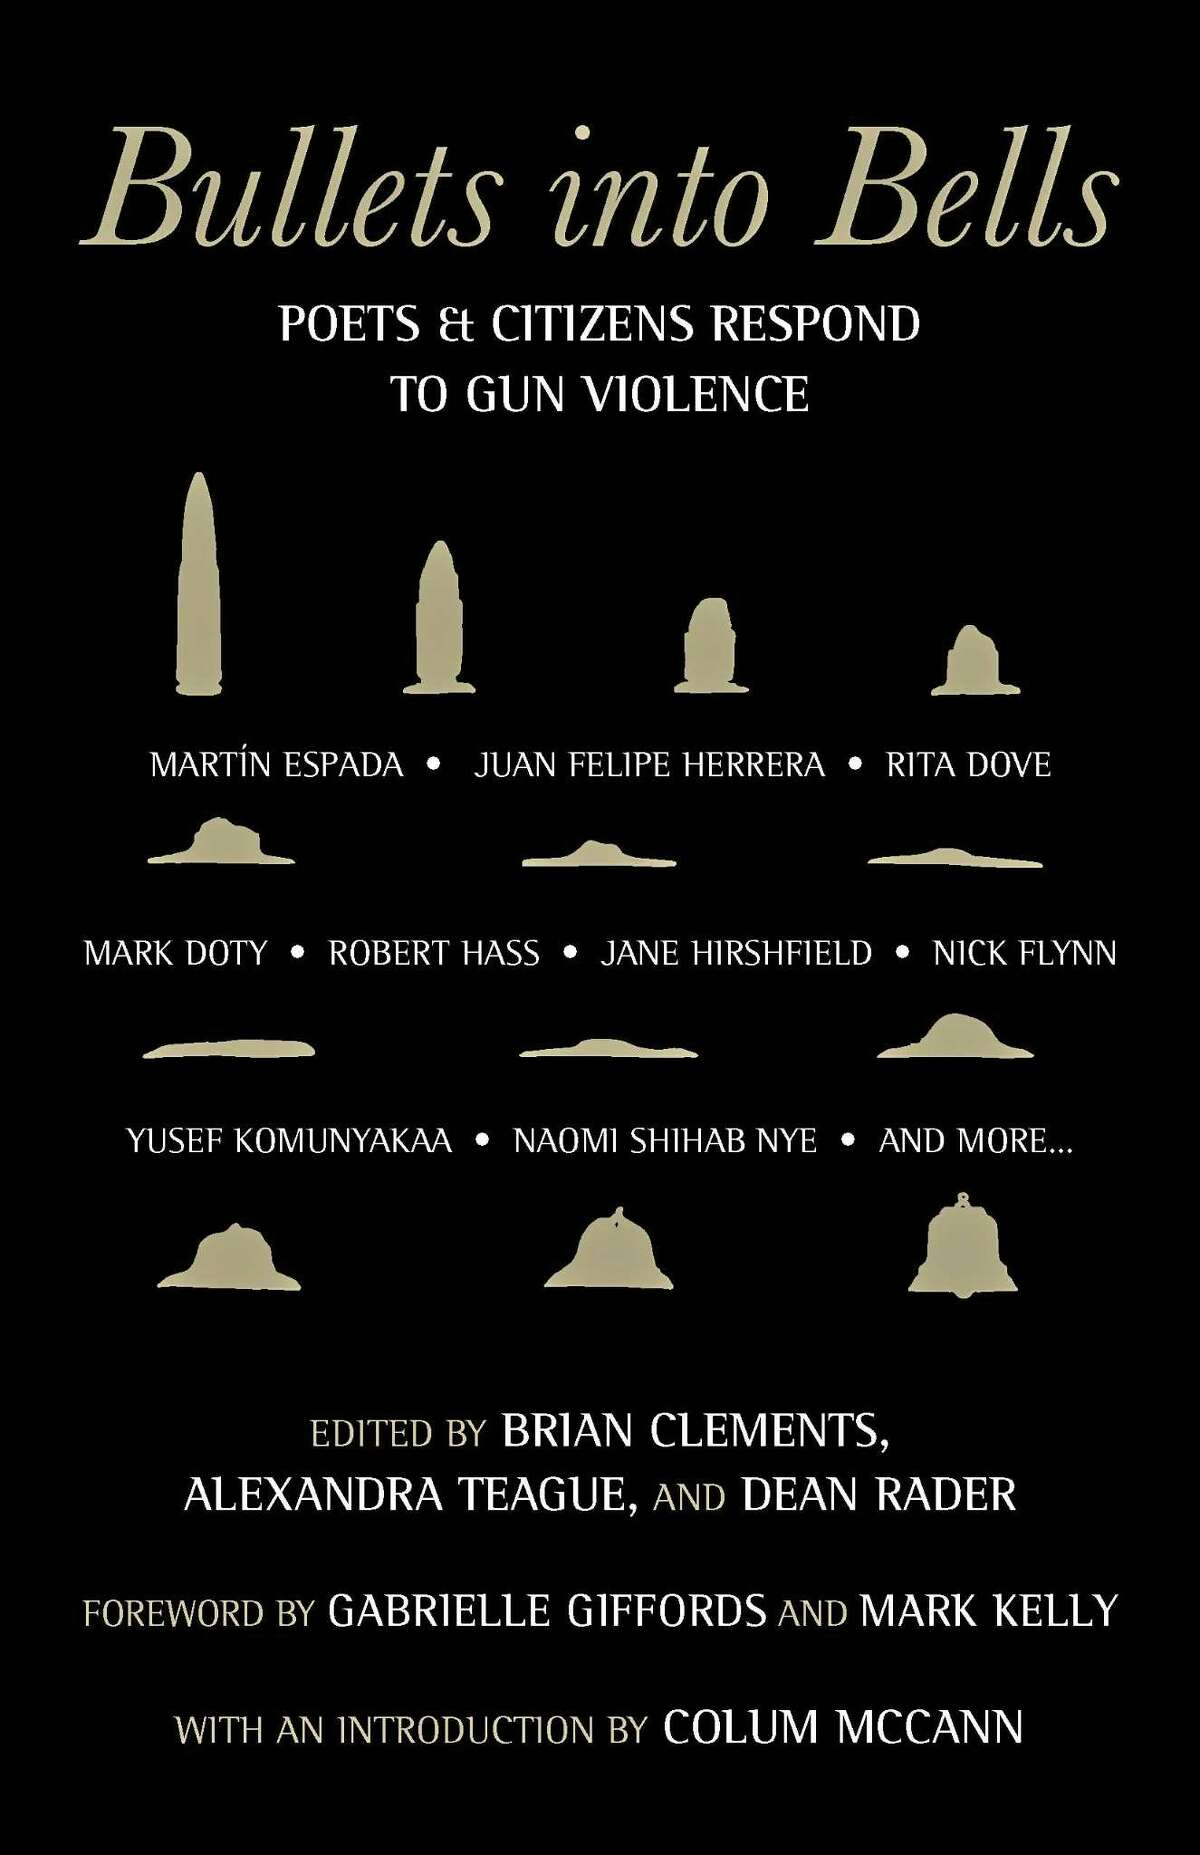 """""""Bullets into Bells: Poets and Citizens Respond to Gun Violence (Beacon Press)"""" is a new book that was released in December 2017, five years after the shootings at Sandy Hook Elementary School in Newtown, Conn. One of the editors and contributors is Newtown resident Brian Clements, whose wife, a teacher, survived the shooting."""